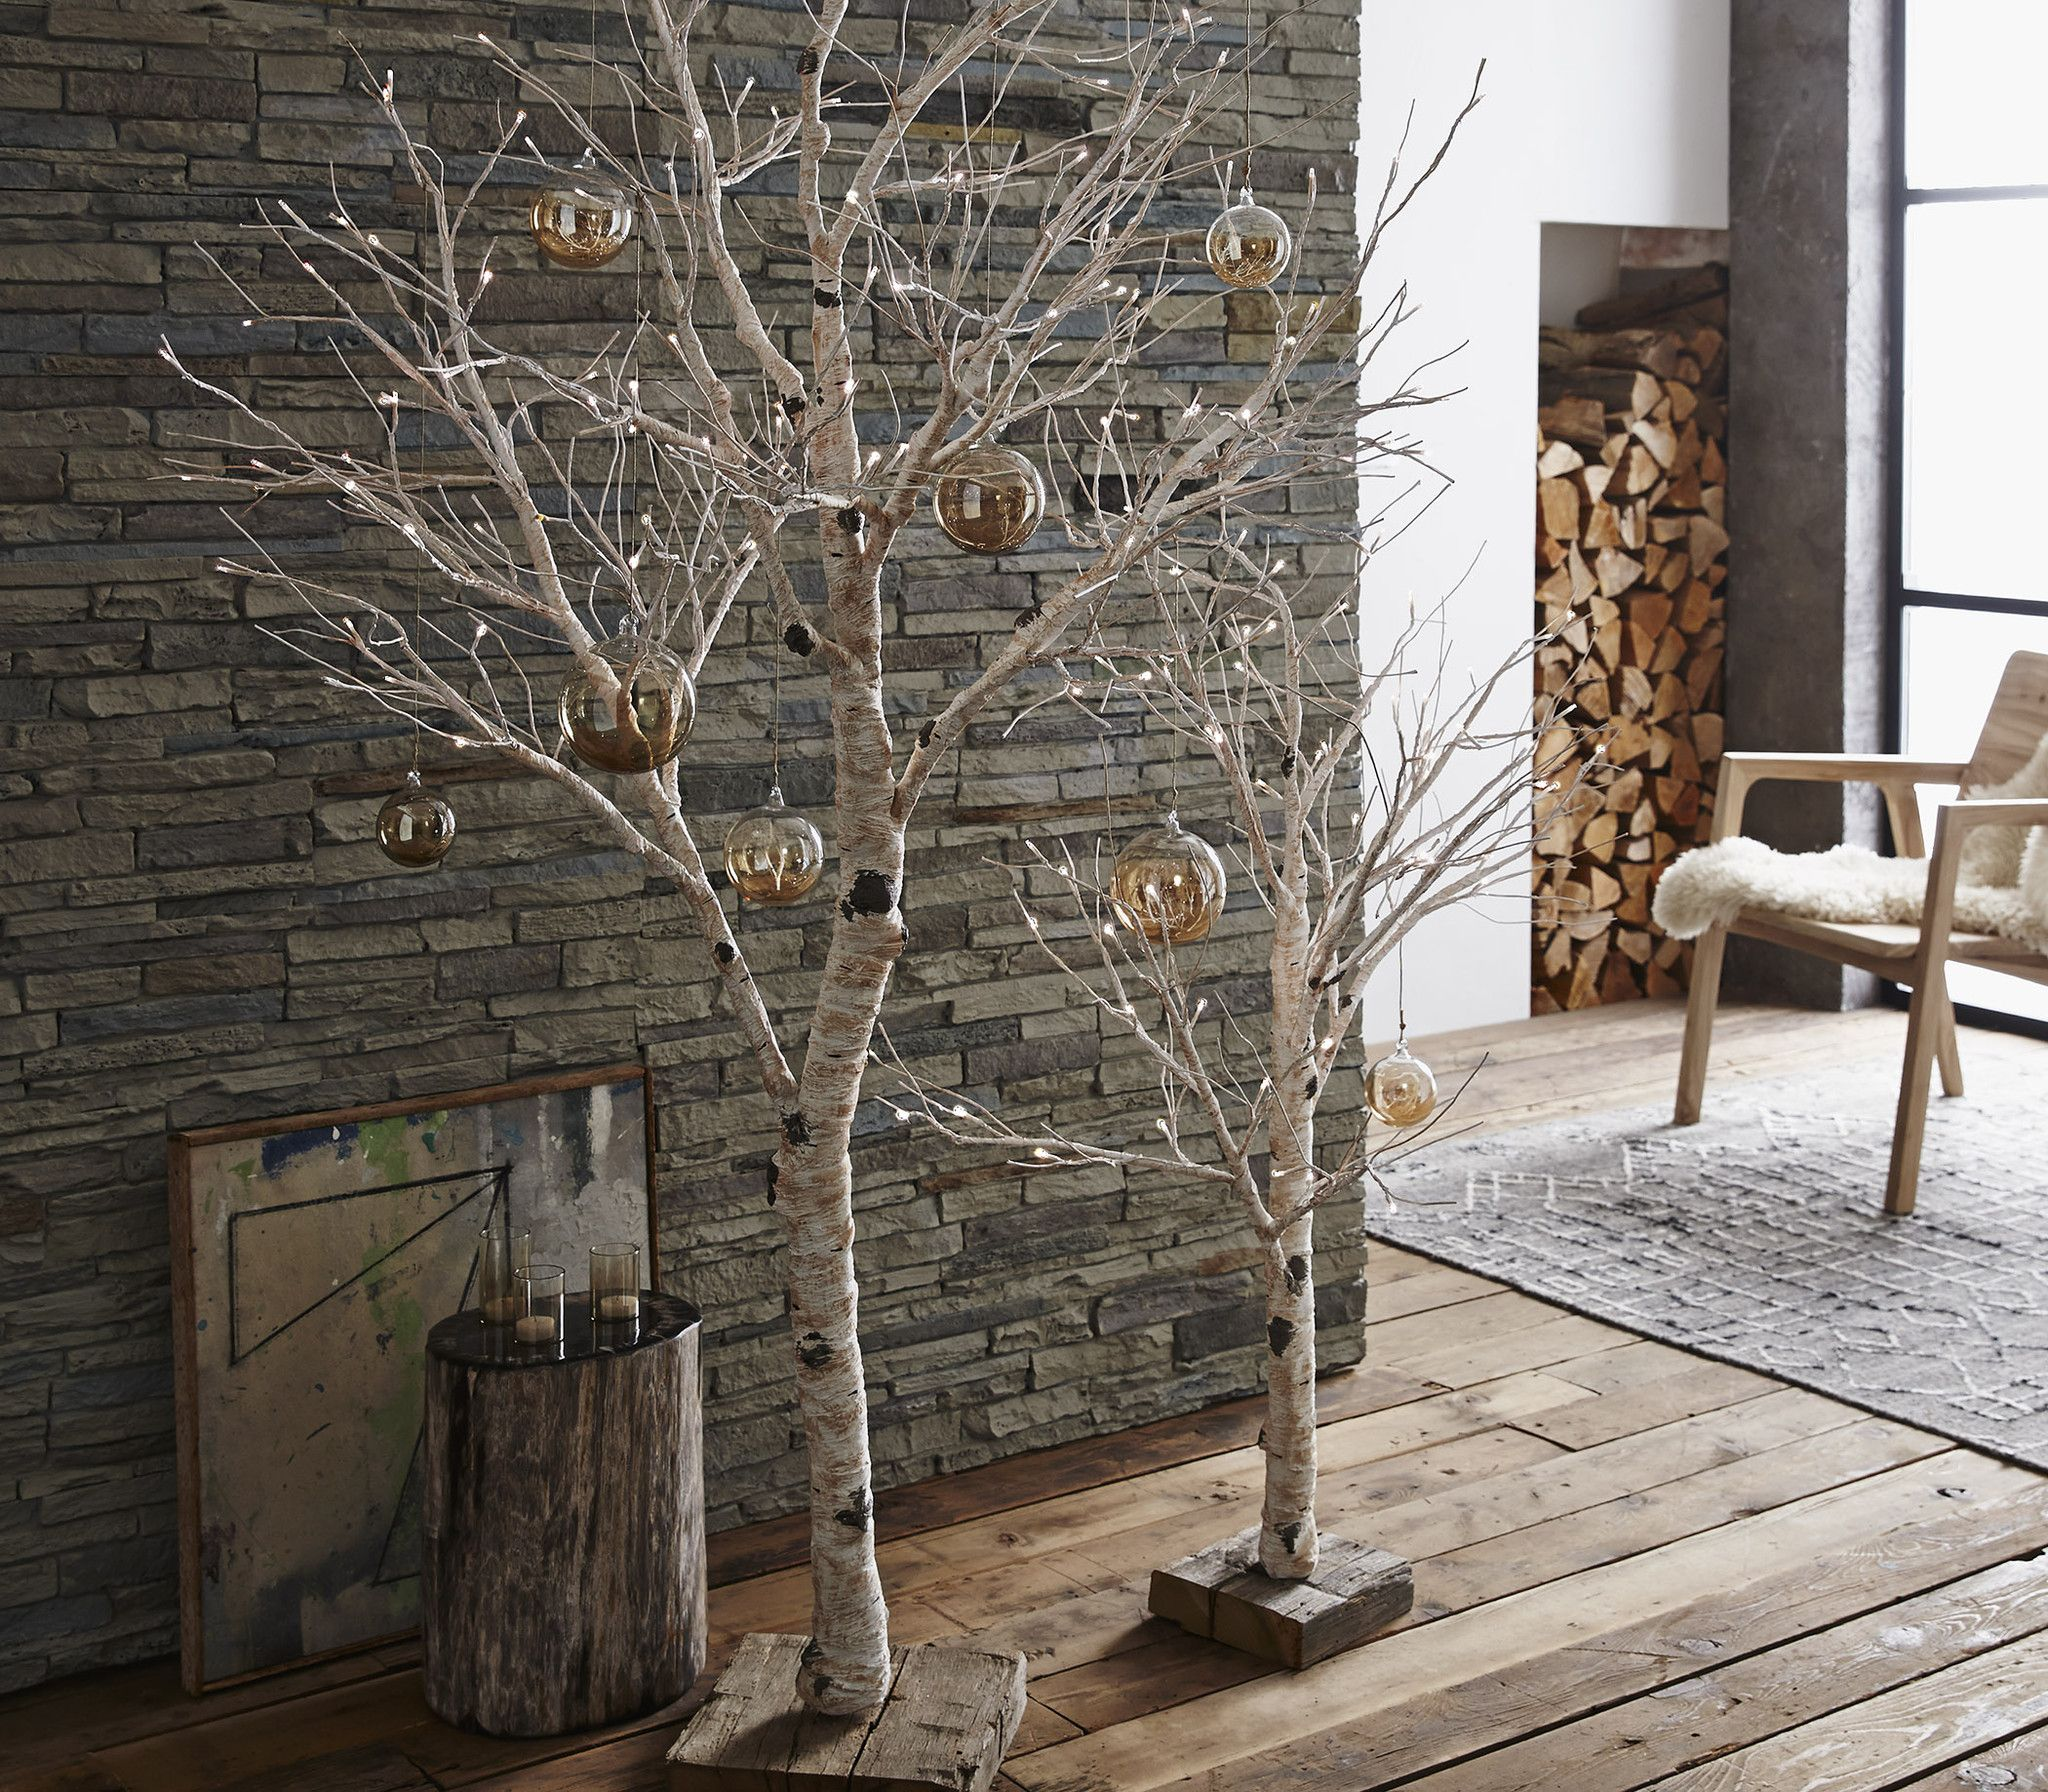 Birch Tree As Decor - Lighted Birch Tree